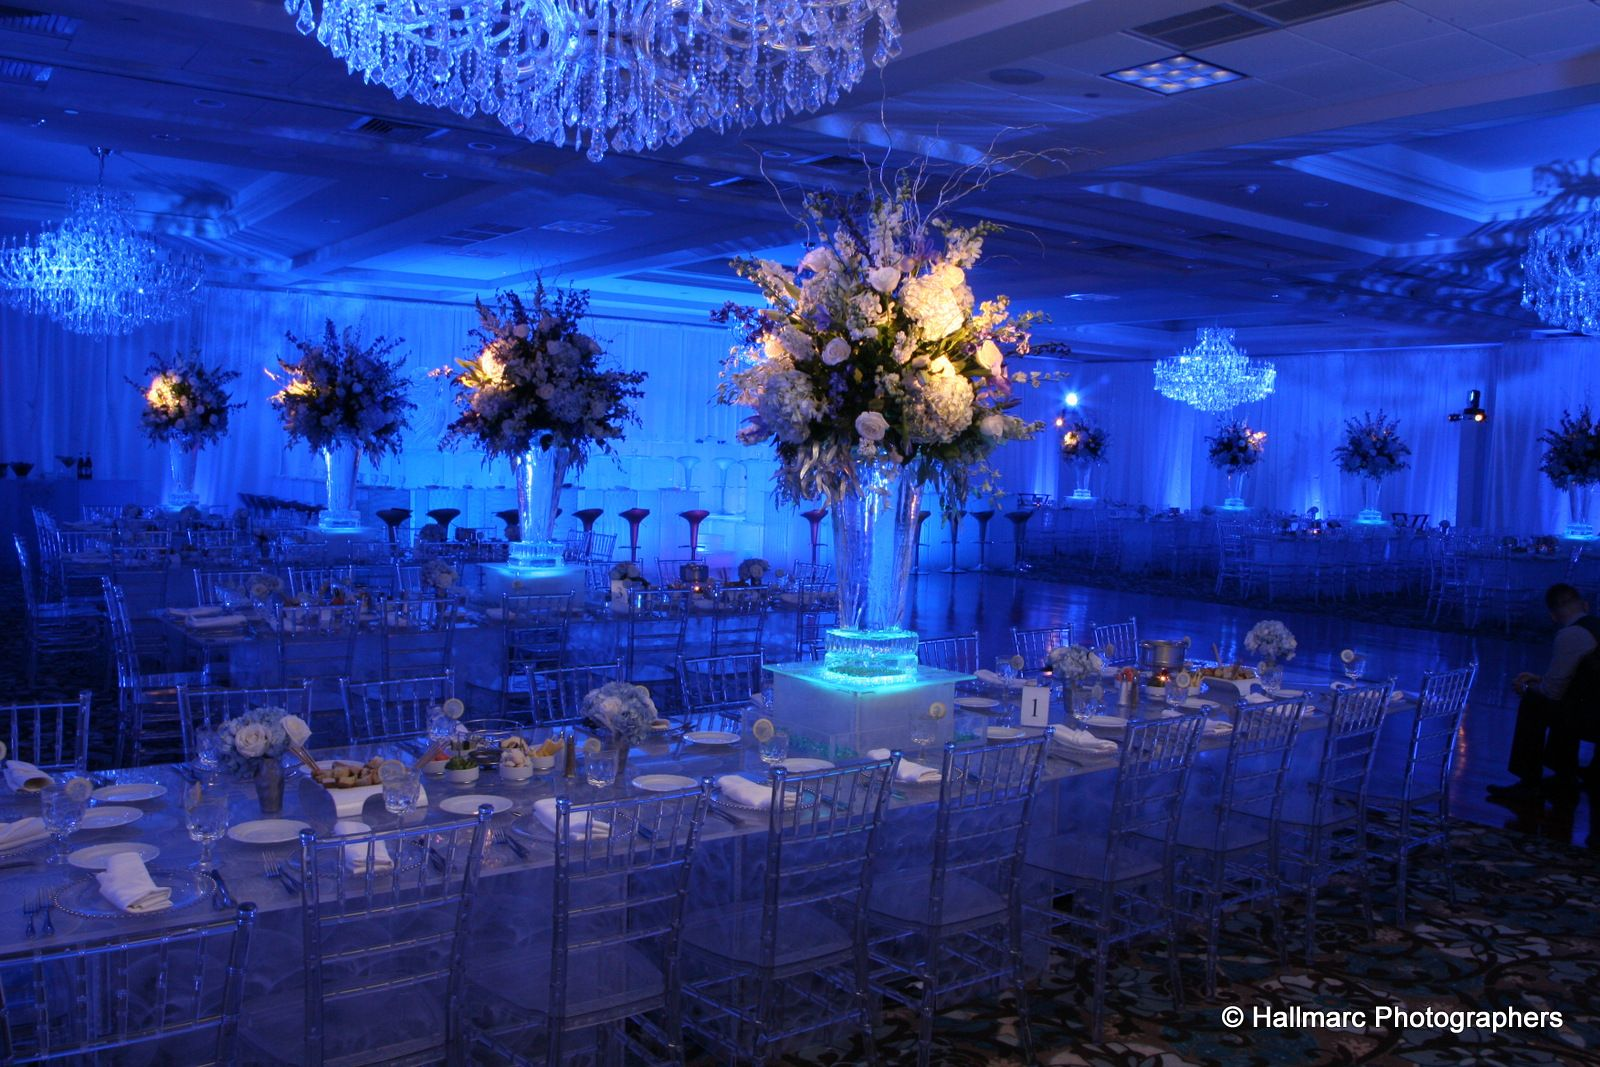 www.CrystalBallroomNJ.com Photo courtesy of Hallmarc Photographers  www.hallmarc.com #wedding #nj #newjersey #venue… | Nj wedding venues, Nj  weddings, Wedding venues